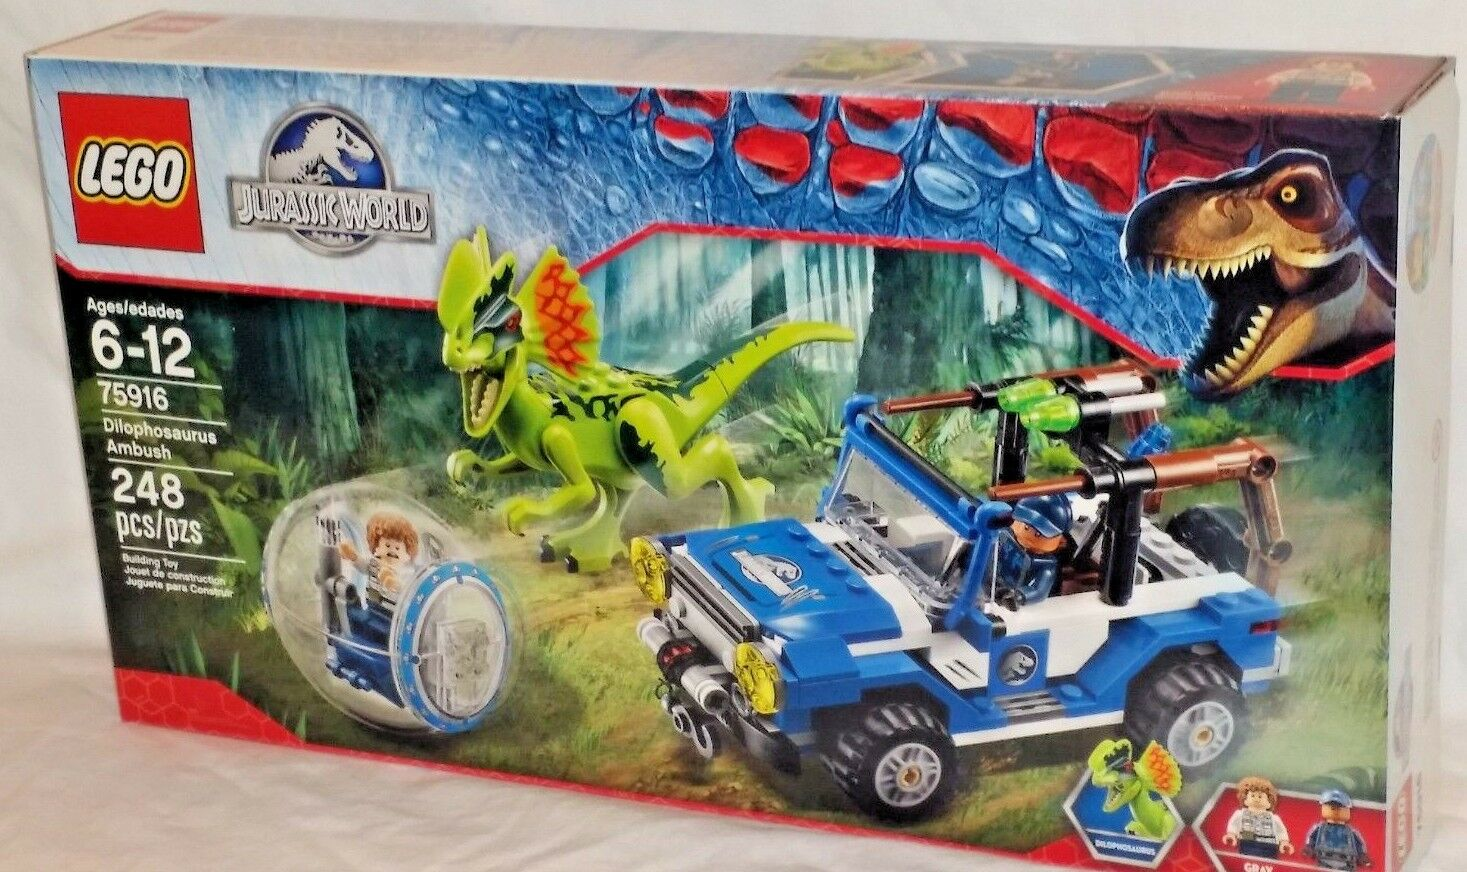 SEALED 75916 LEGO Jurassic World movie DILOPHOSAURUS AMBUSH 248 pc set RETIROT